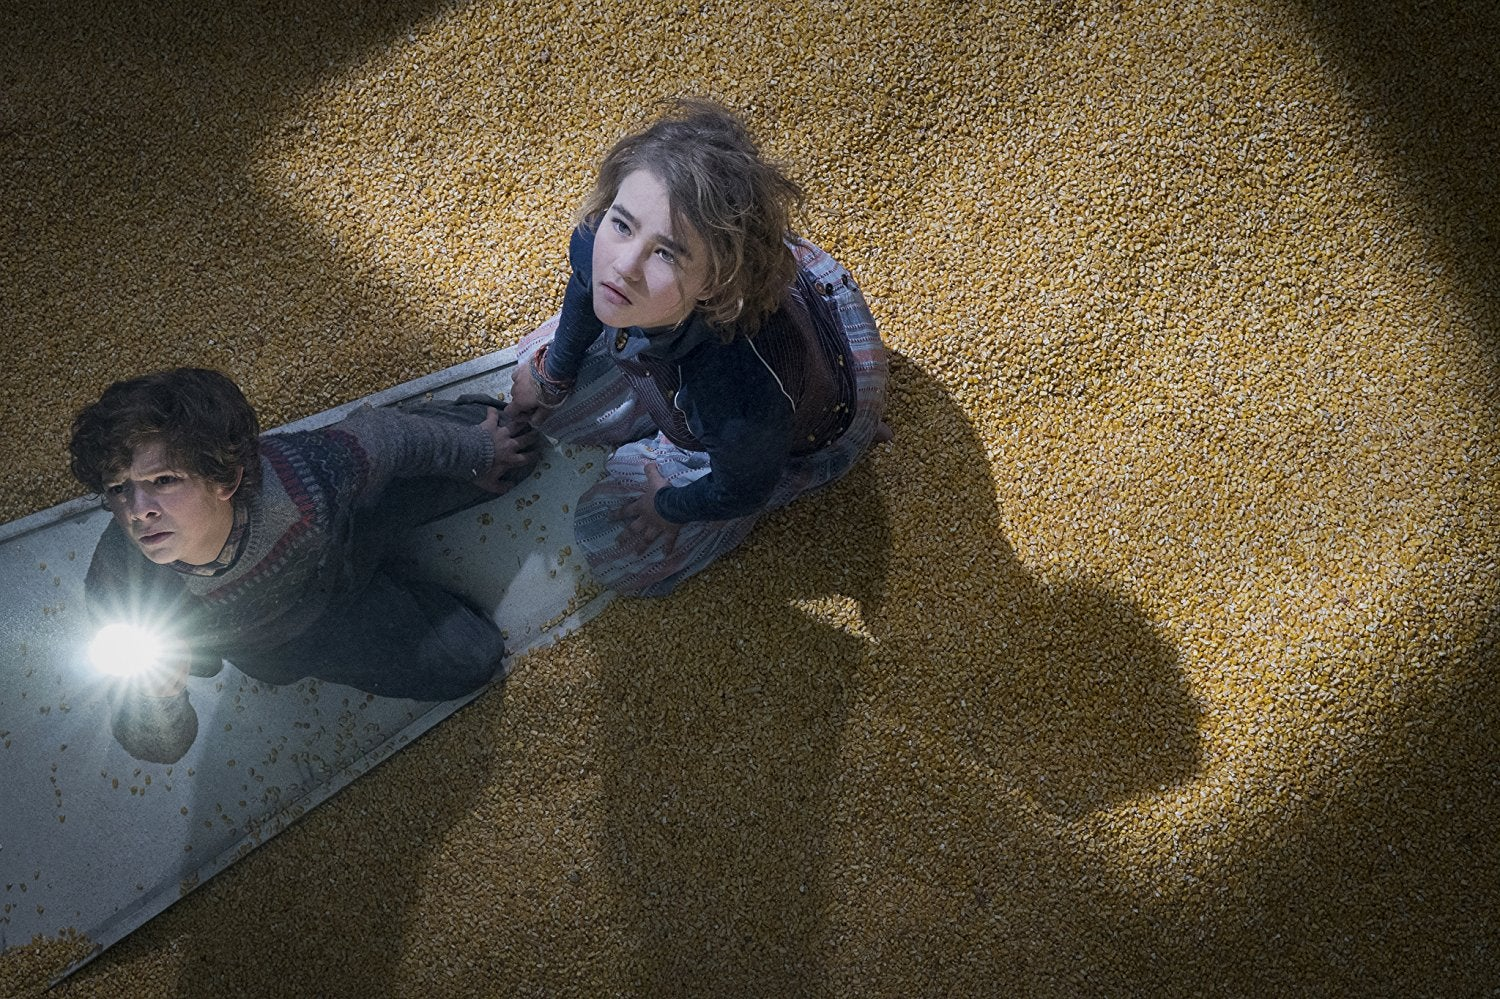 The kids from A Quiet Place (a boy, about 8 years old, and a girl, about 13) sit on a metal door in the middle of a silo full of grain. They look up, scared. The boy brandishes a flashlight.